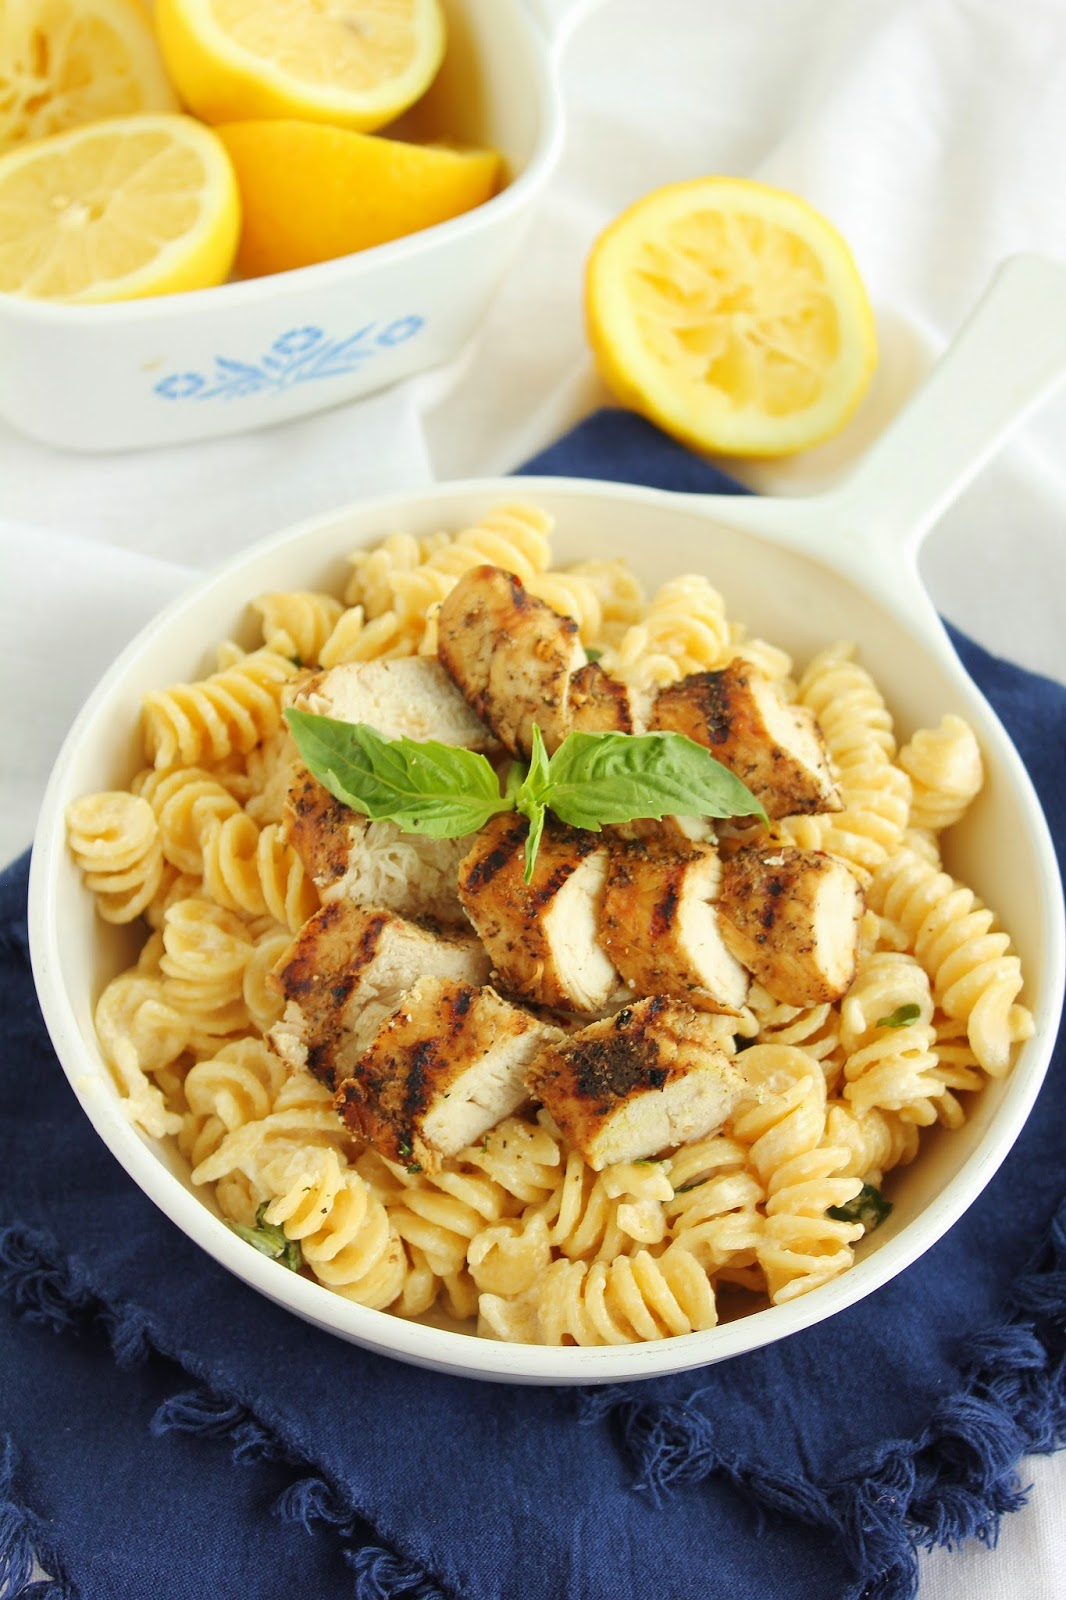 Grilled Chicken With Lemon Basil Pasta Recipes — Dishmaps